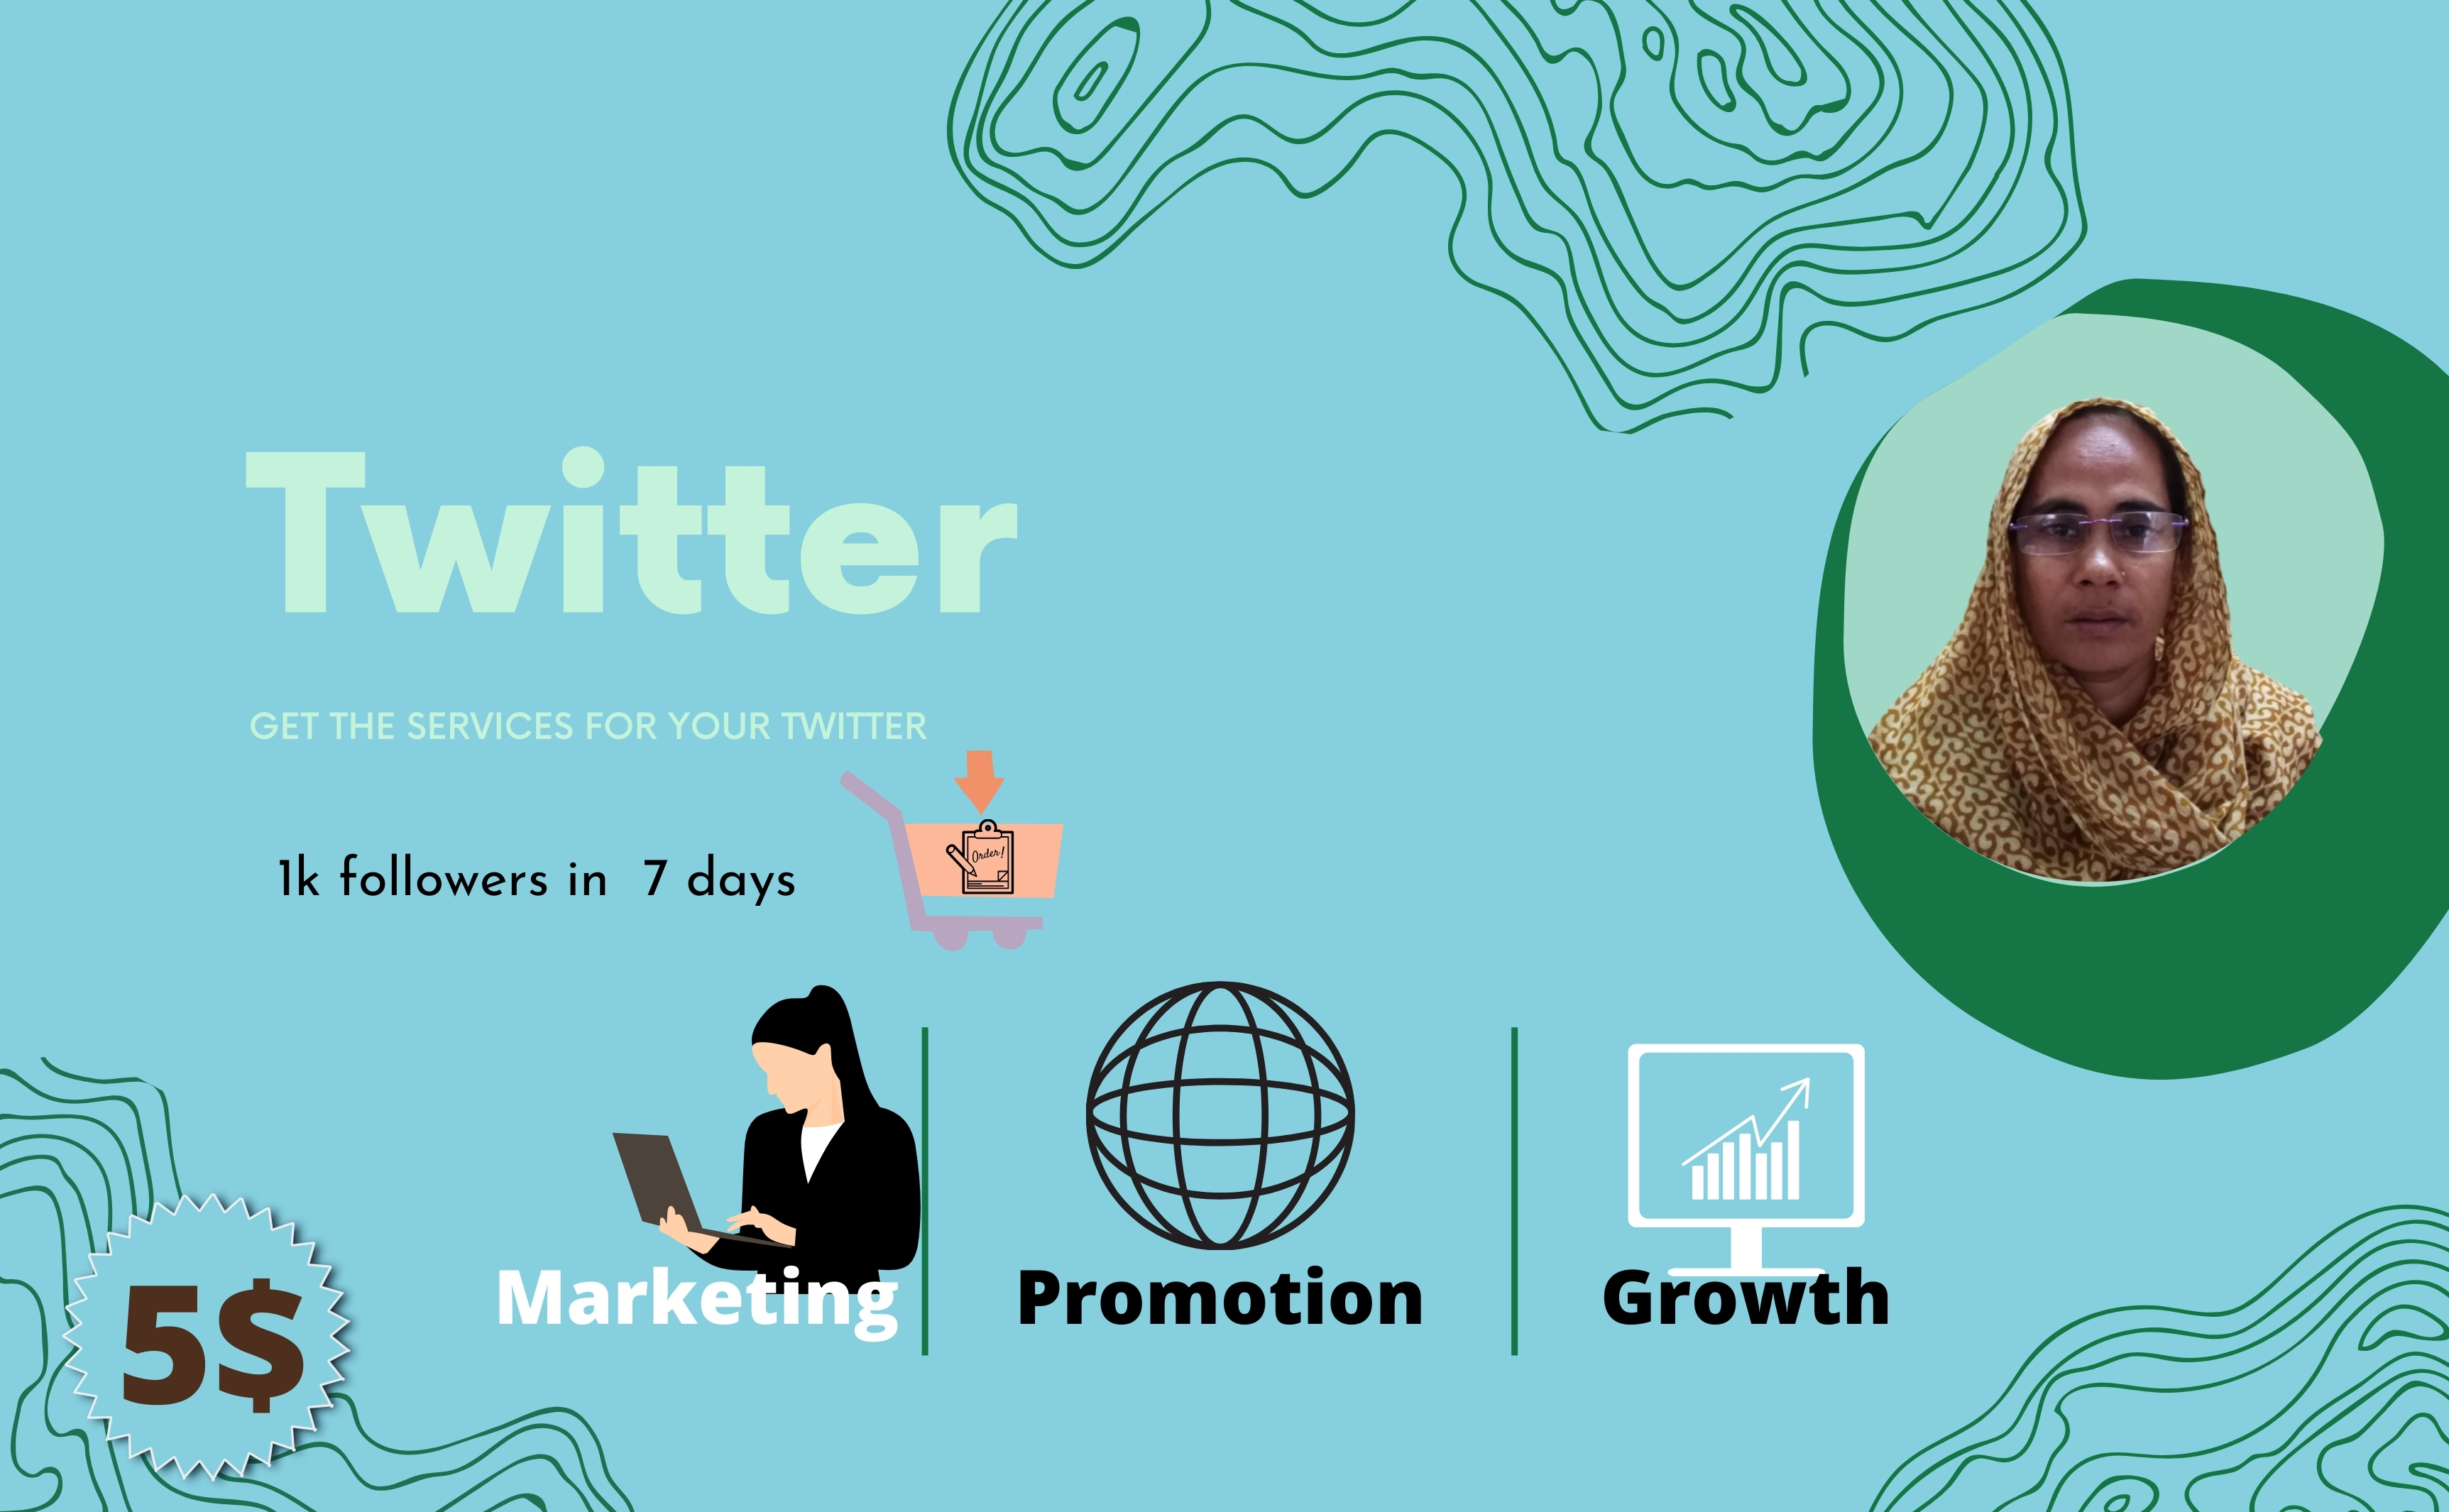 I will promote your Twitter account & products